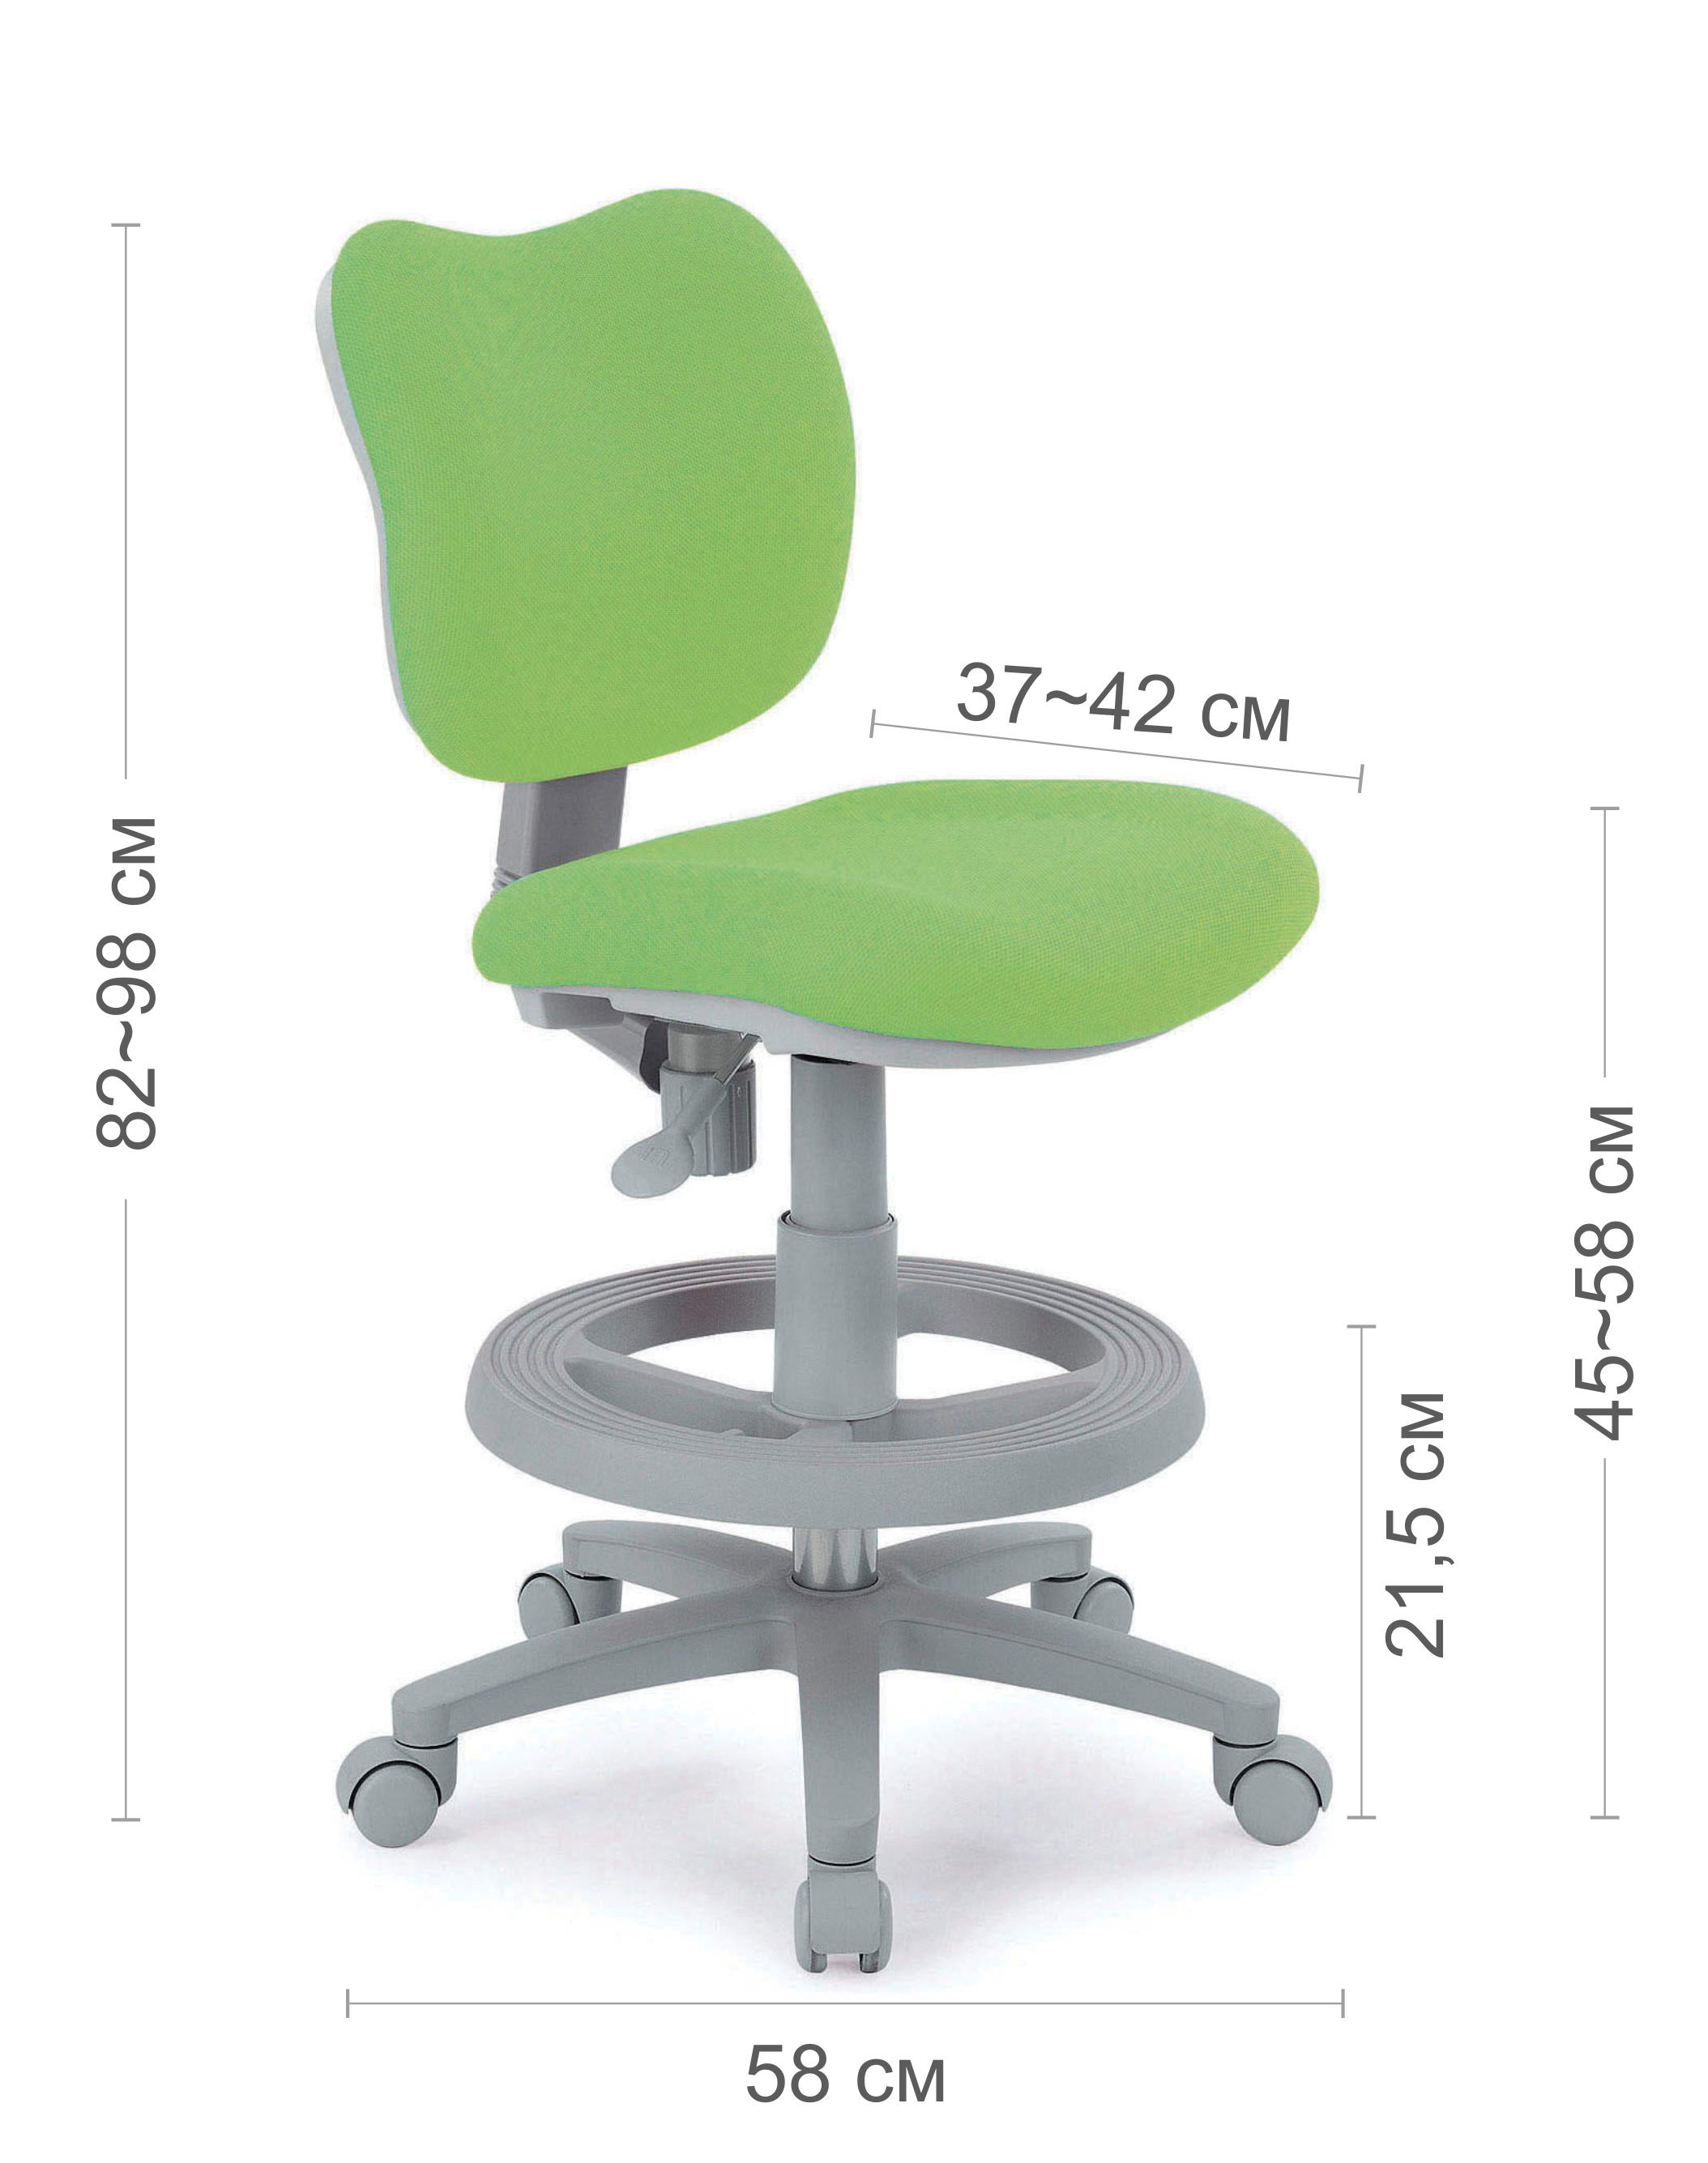 парта-трансформер tct nanotec g6+xs с креслом kids chair и лампой TCT Nanotec G6+XS+кресло Kids Chair+TL20S